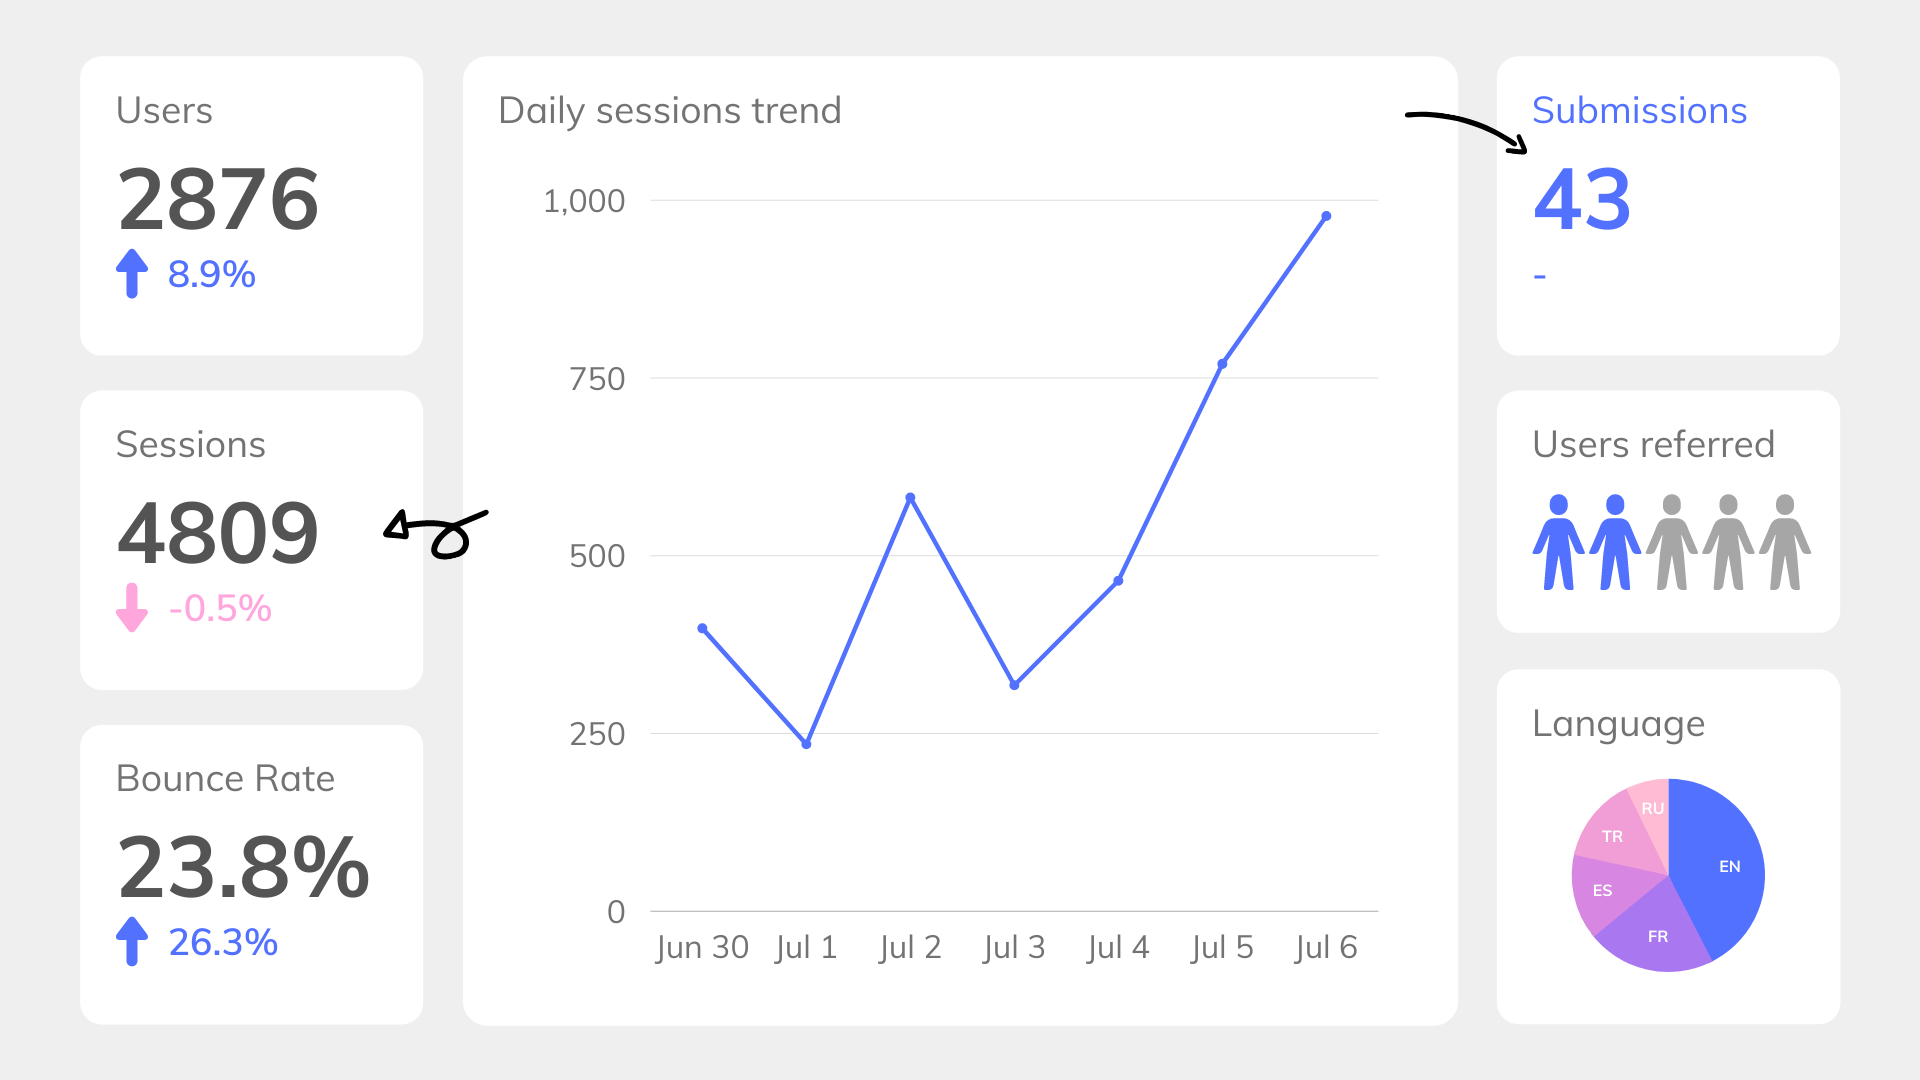 Analytics dashboard mock-up example including users, sessions, bounce rate, submissions, referrals, language and session trends